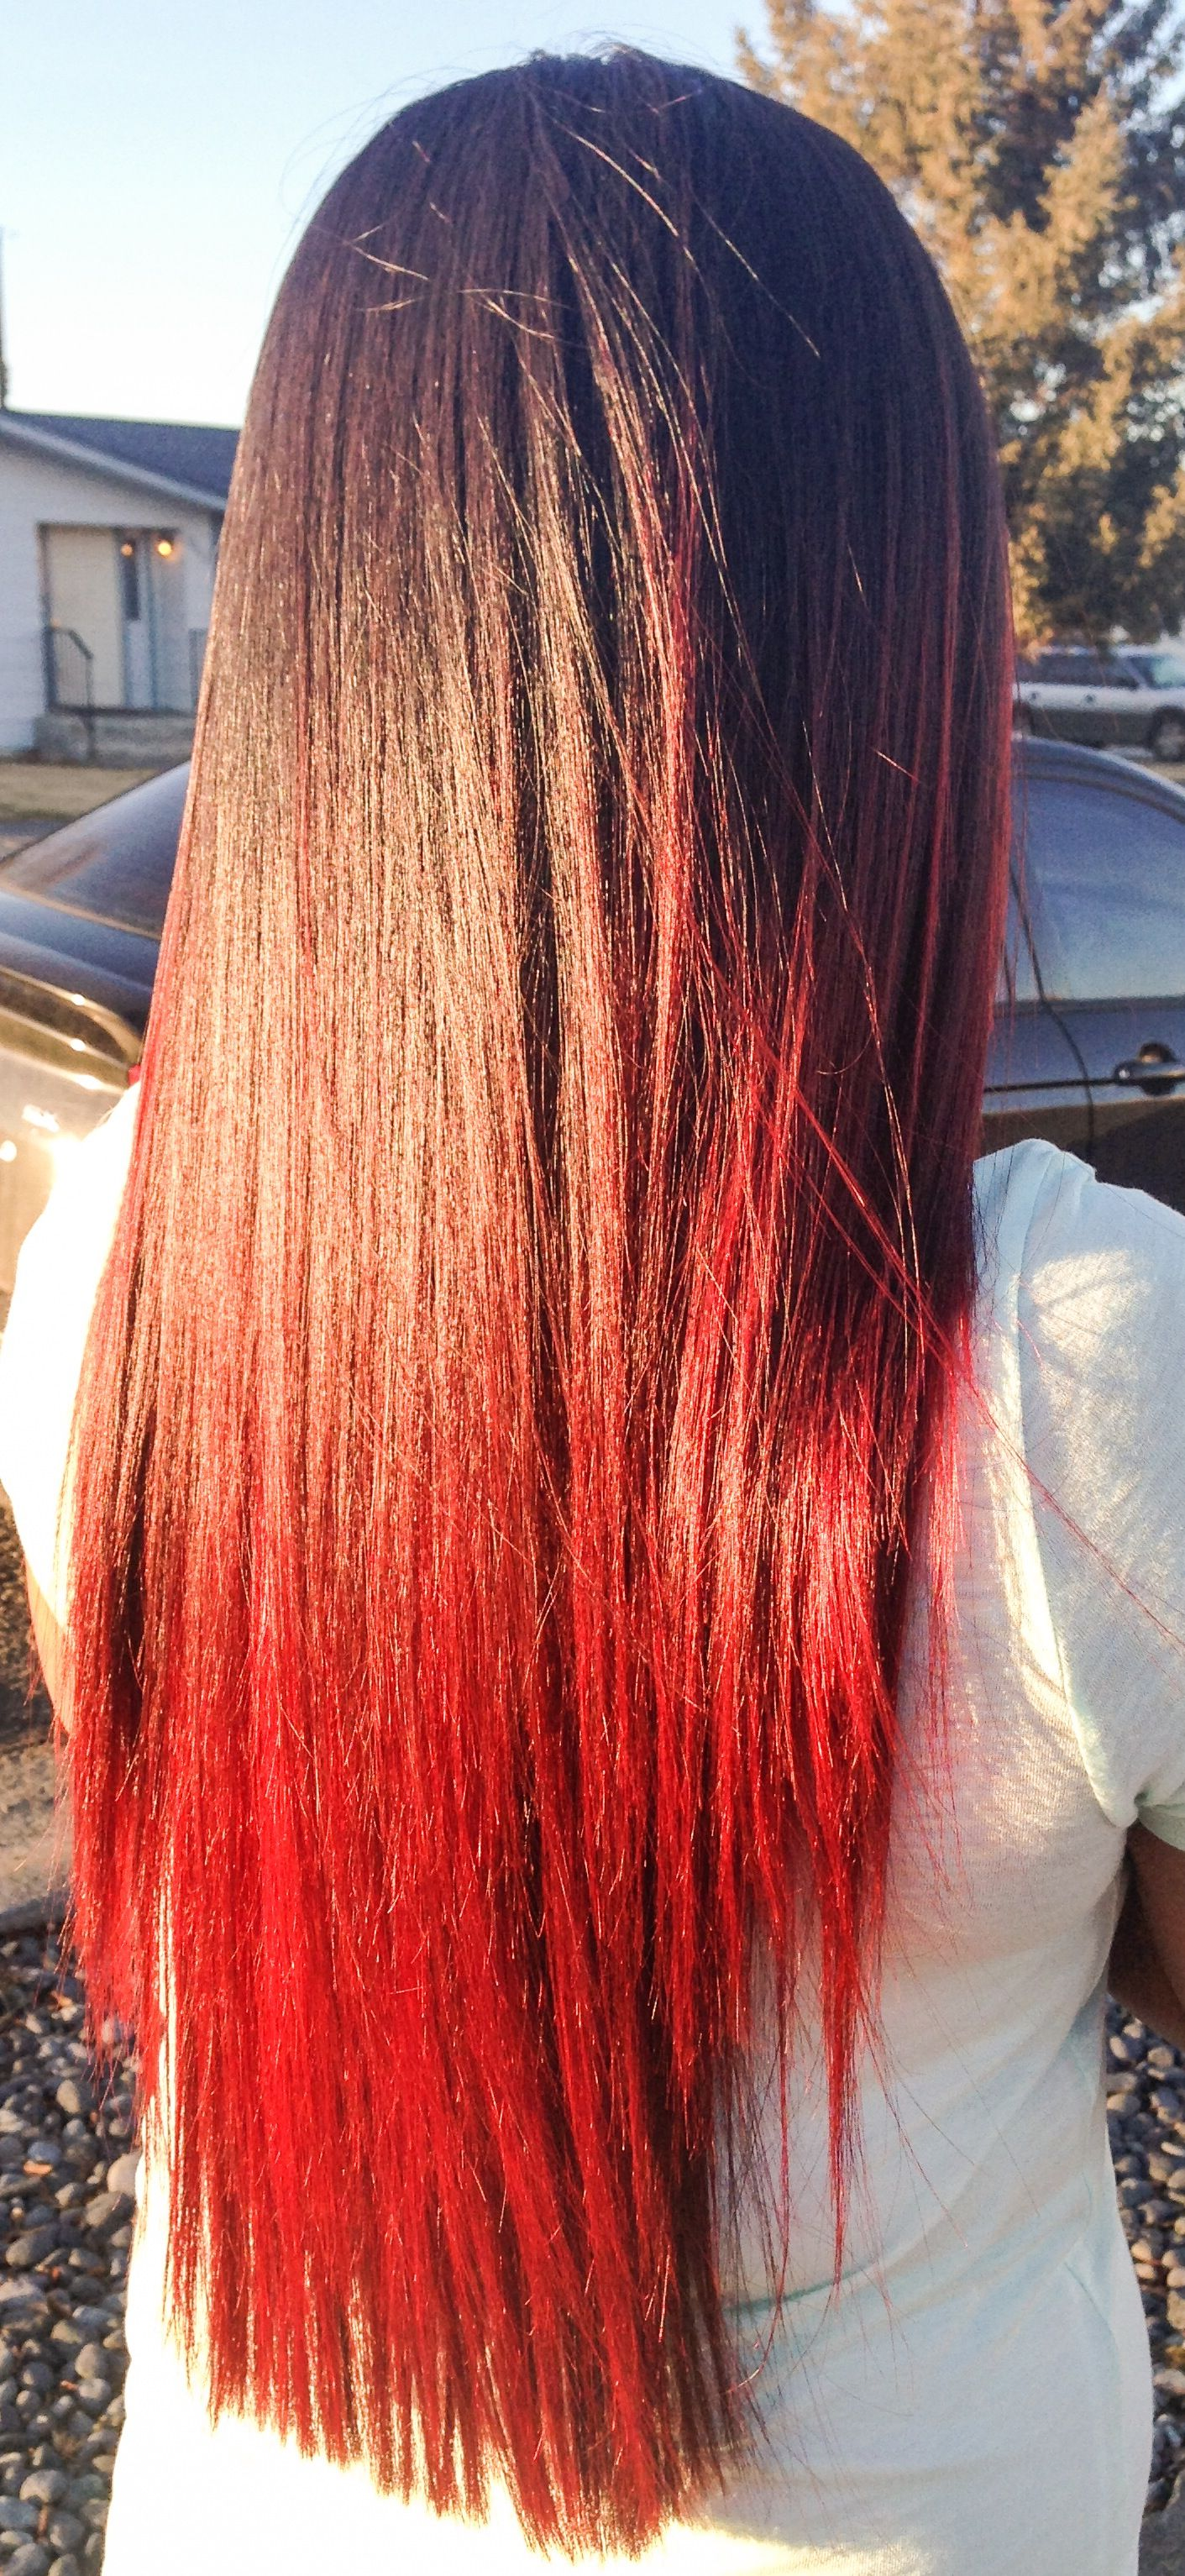 Brown hair with red tips | Everything Hair | Pinterest ...